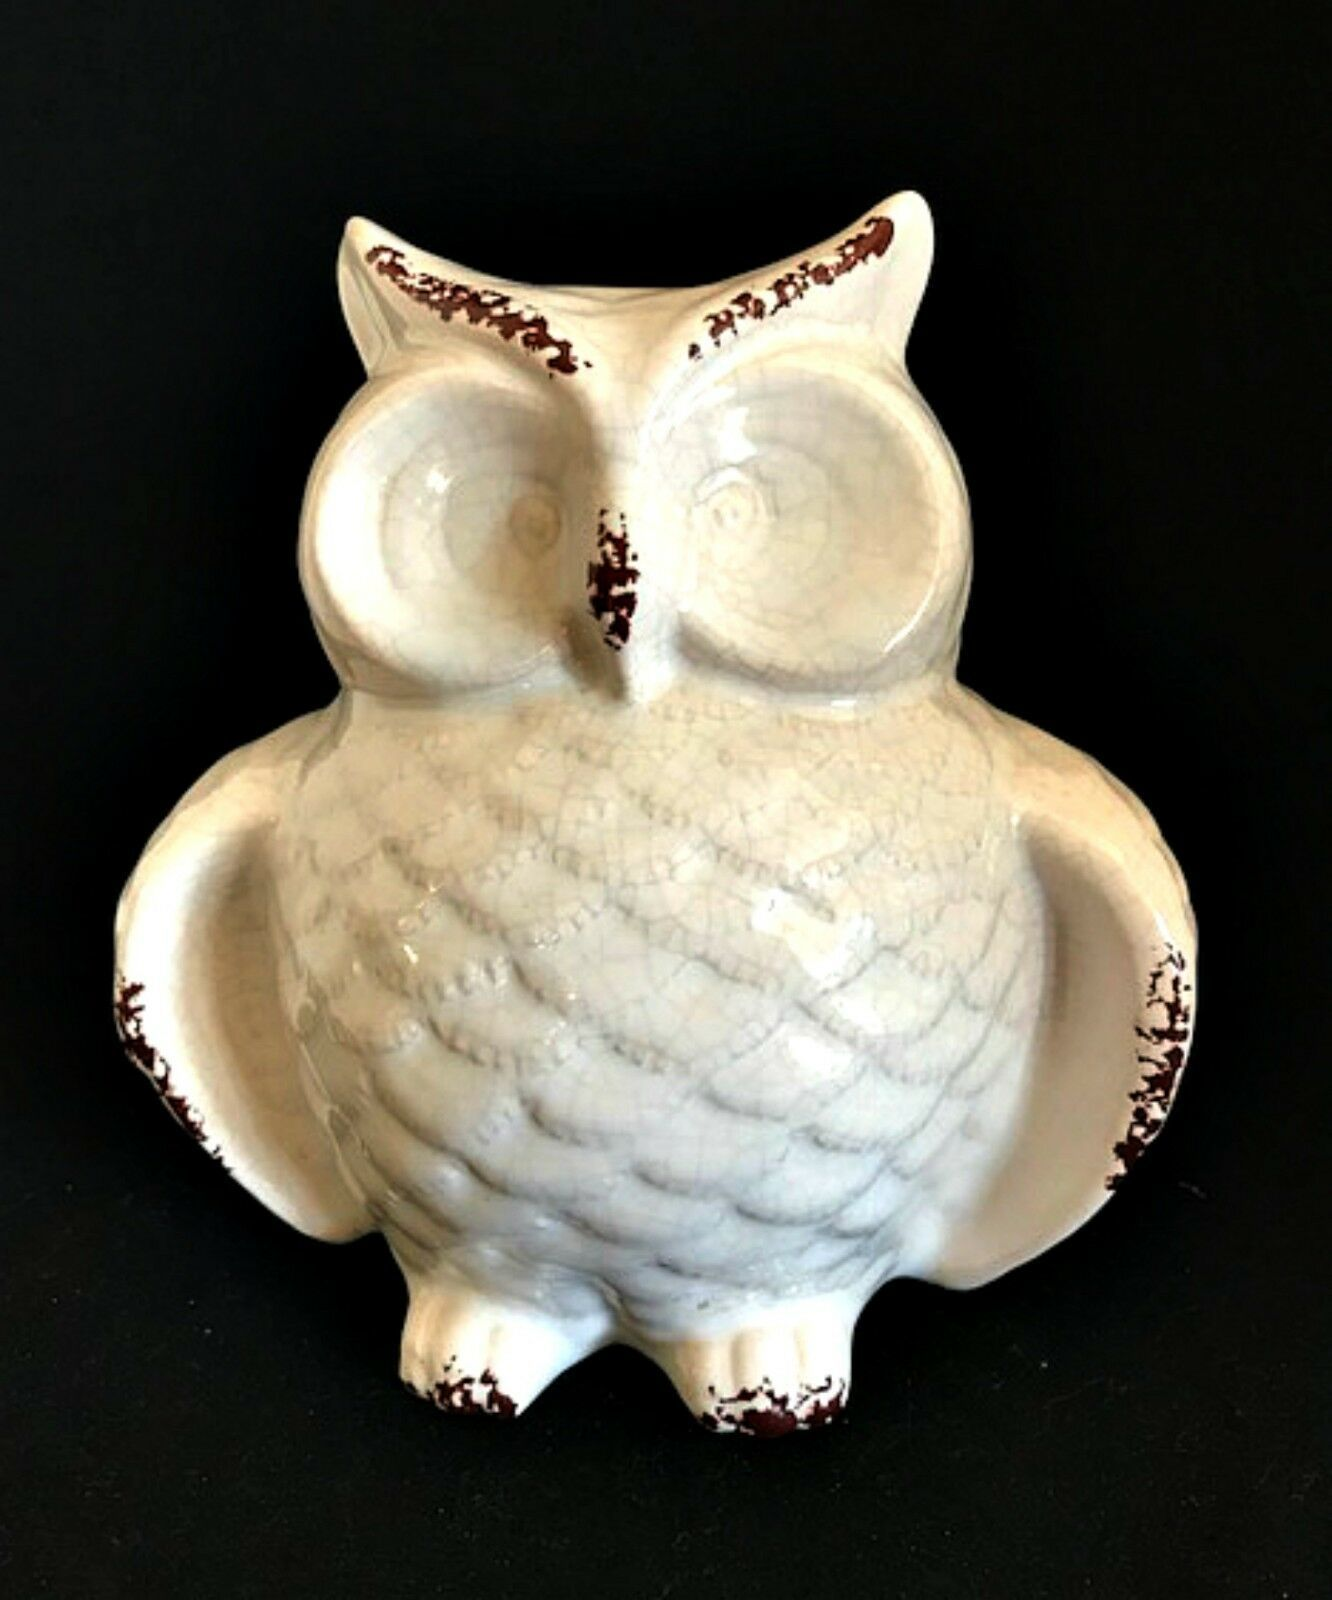 Ceramic Owl Figurine Shabby Glazed Paint White Brown Home Decor 6.5 in Tall New